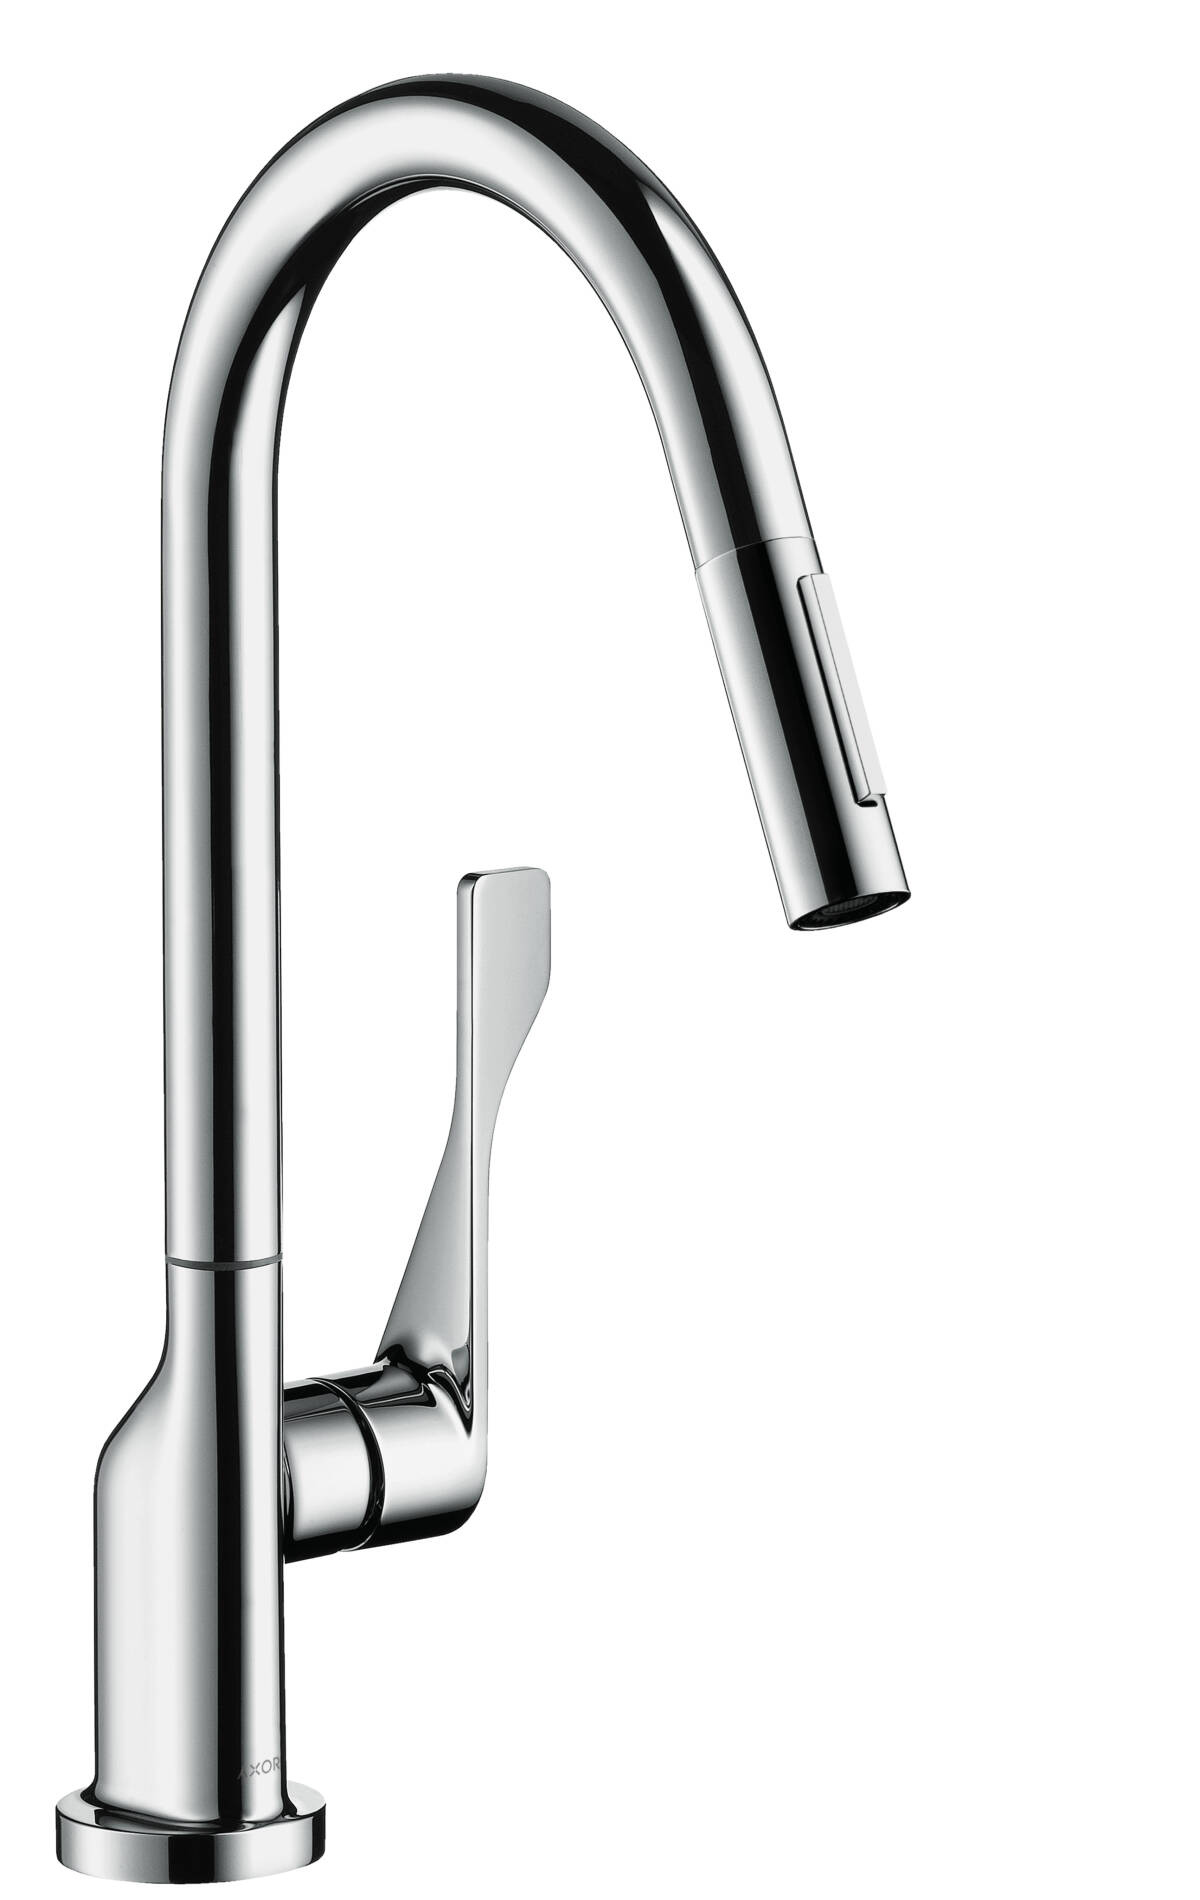 Single lever kitchen mixer 250 with pull-out spray, Polished Gold Optic, 39835990